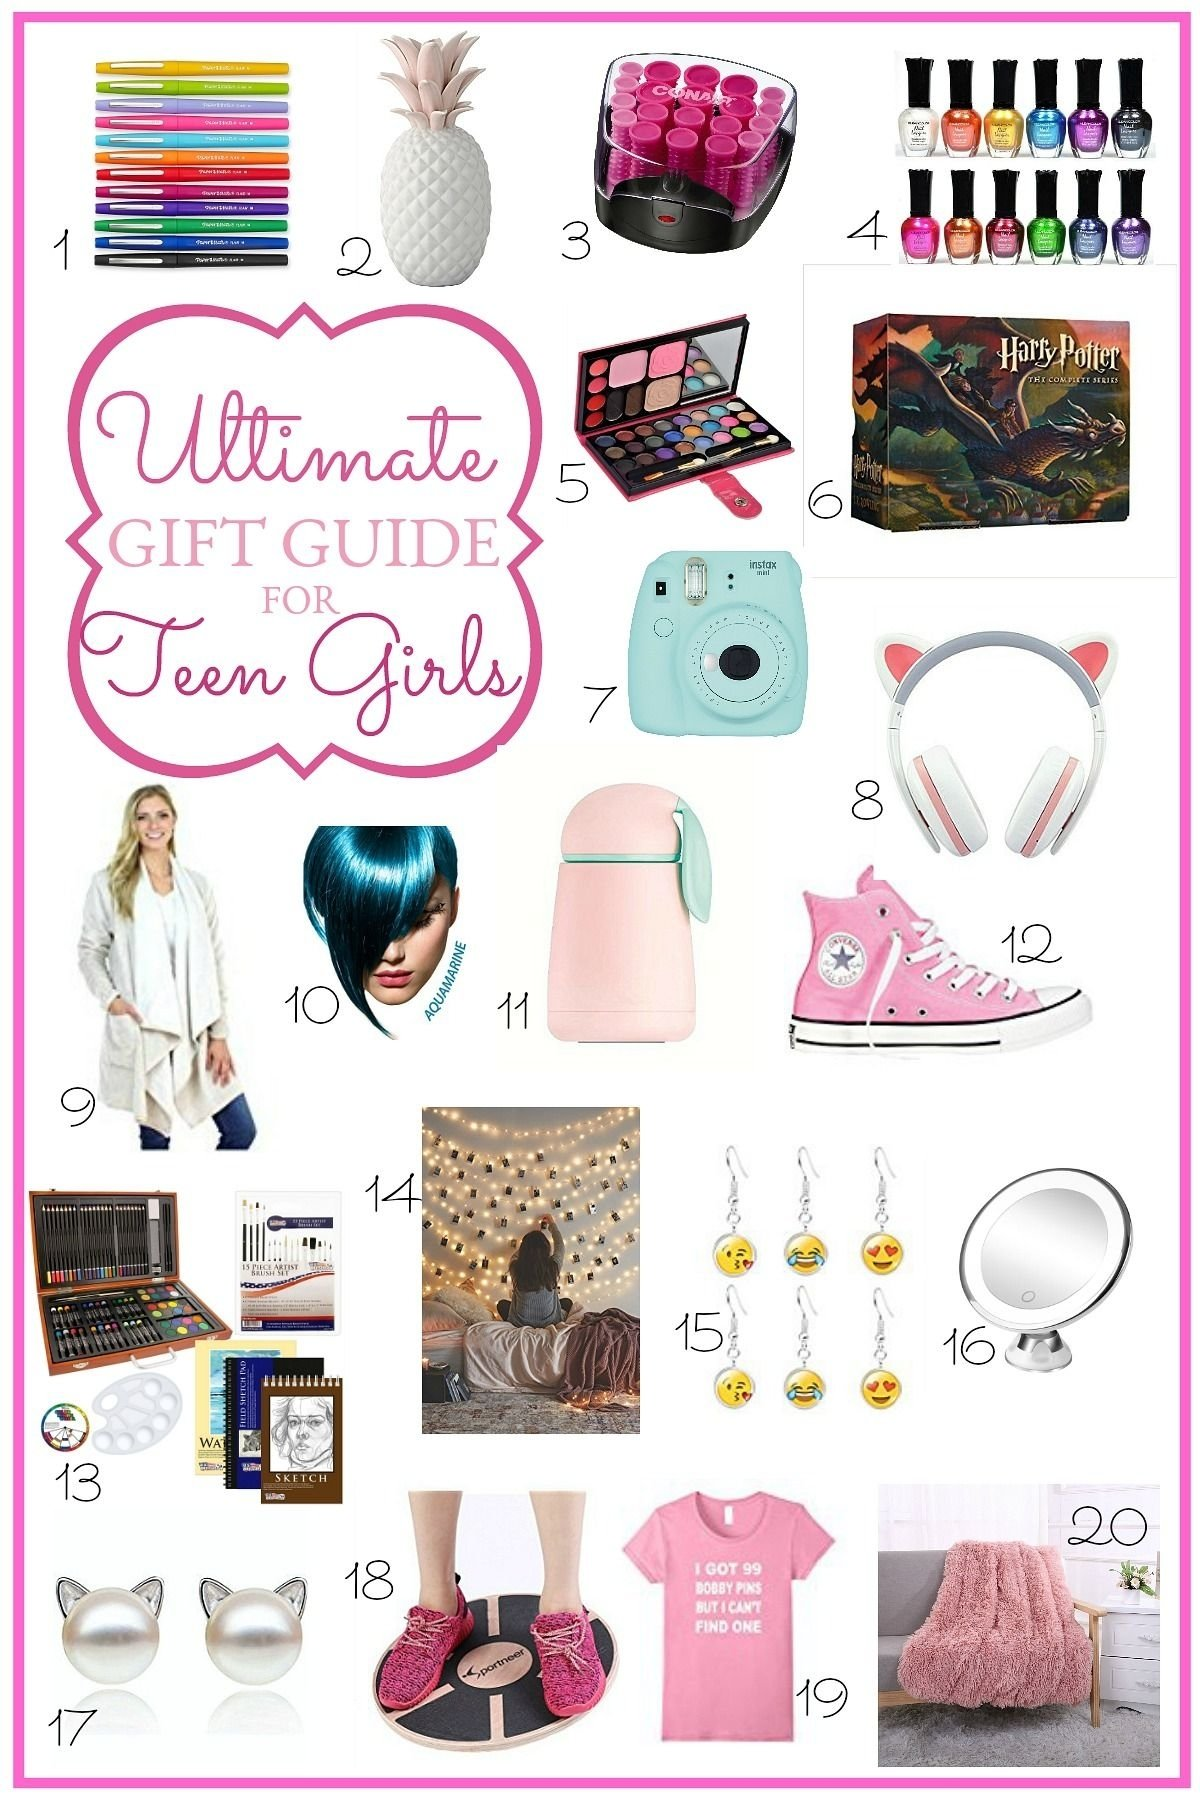 10 Spectacular Birthday Present Ideas For Teenage Girls ultimate holiday gift guide for teen girls 2021